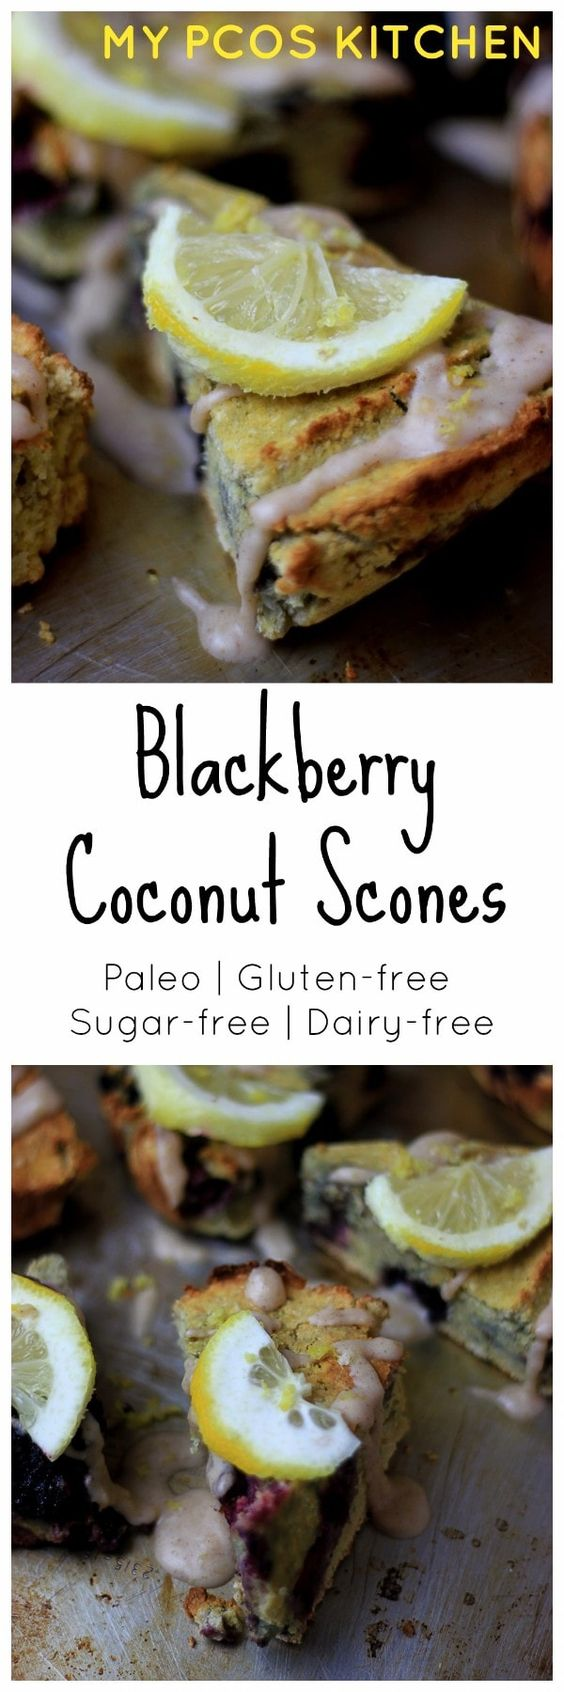 My PCOS Kitchen - Lemon Blackberry Coconut Scones - Paleo Gluten-free & Sugar-free scones perfect for a low carb/keto breakfast or snack! via @mypcoskitchen